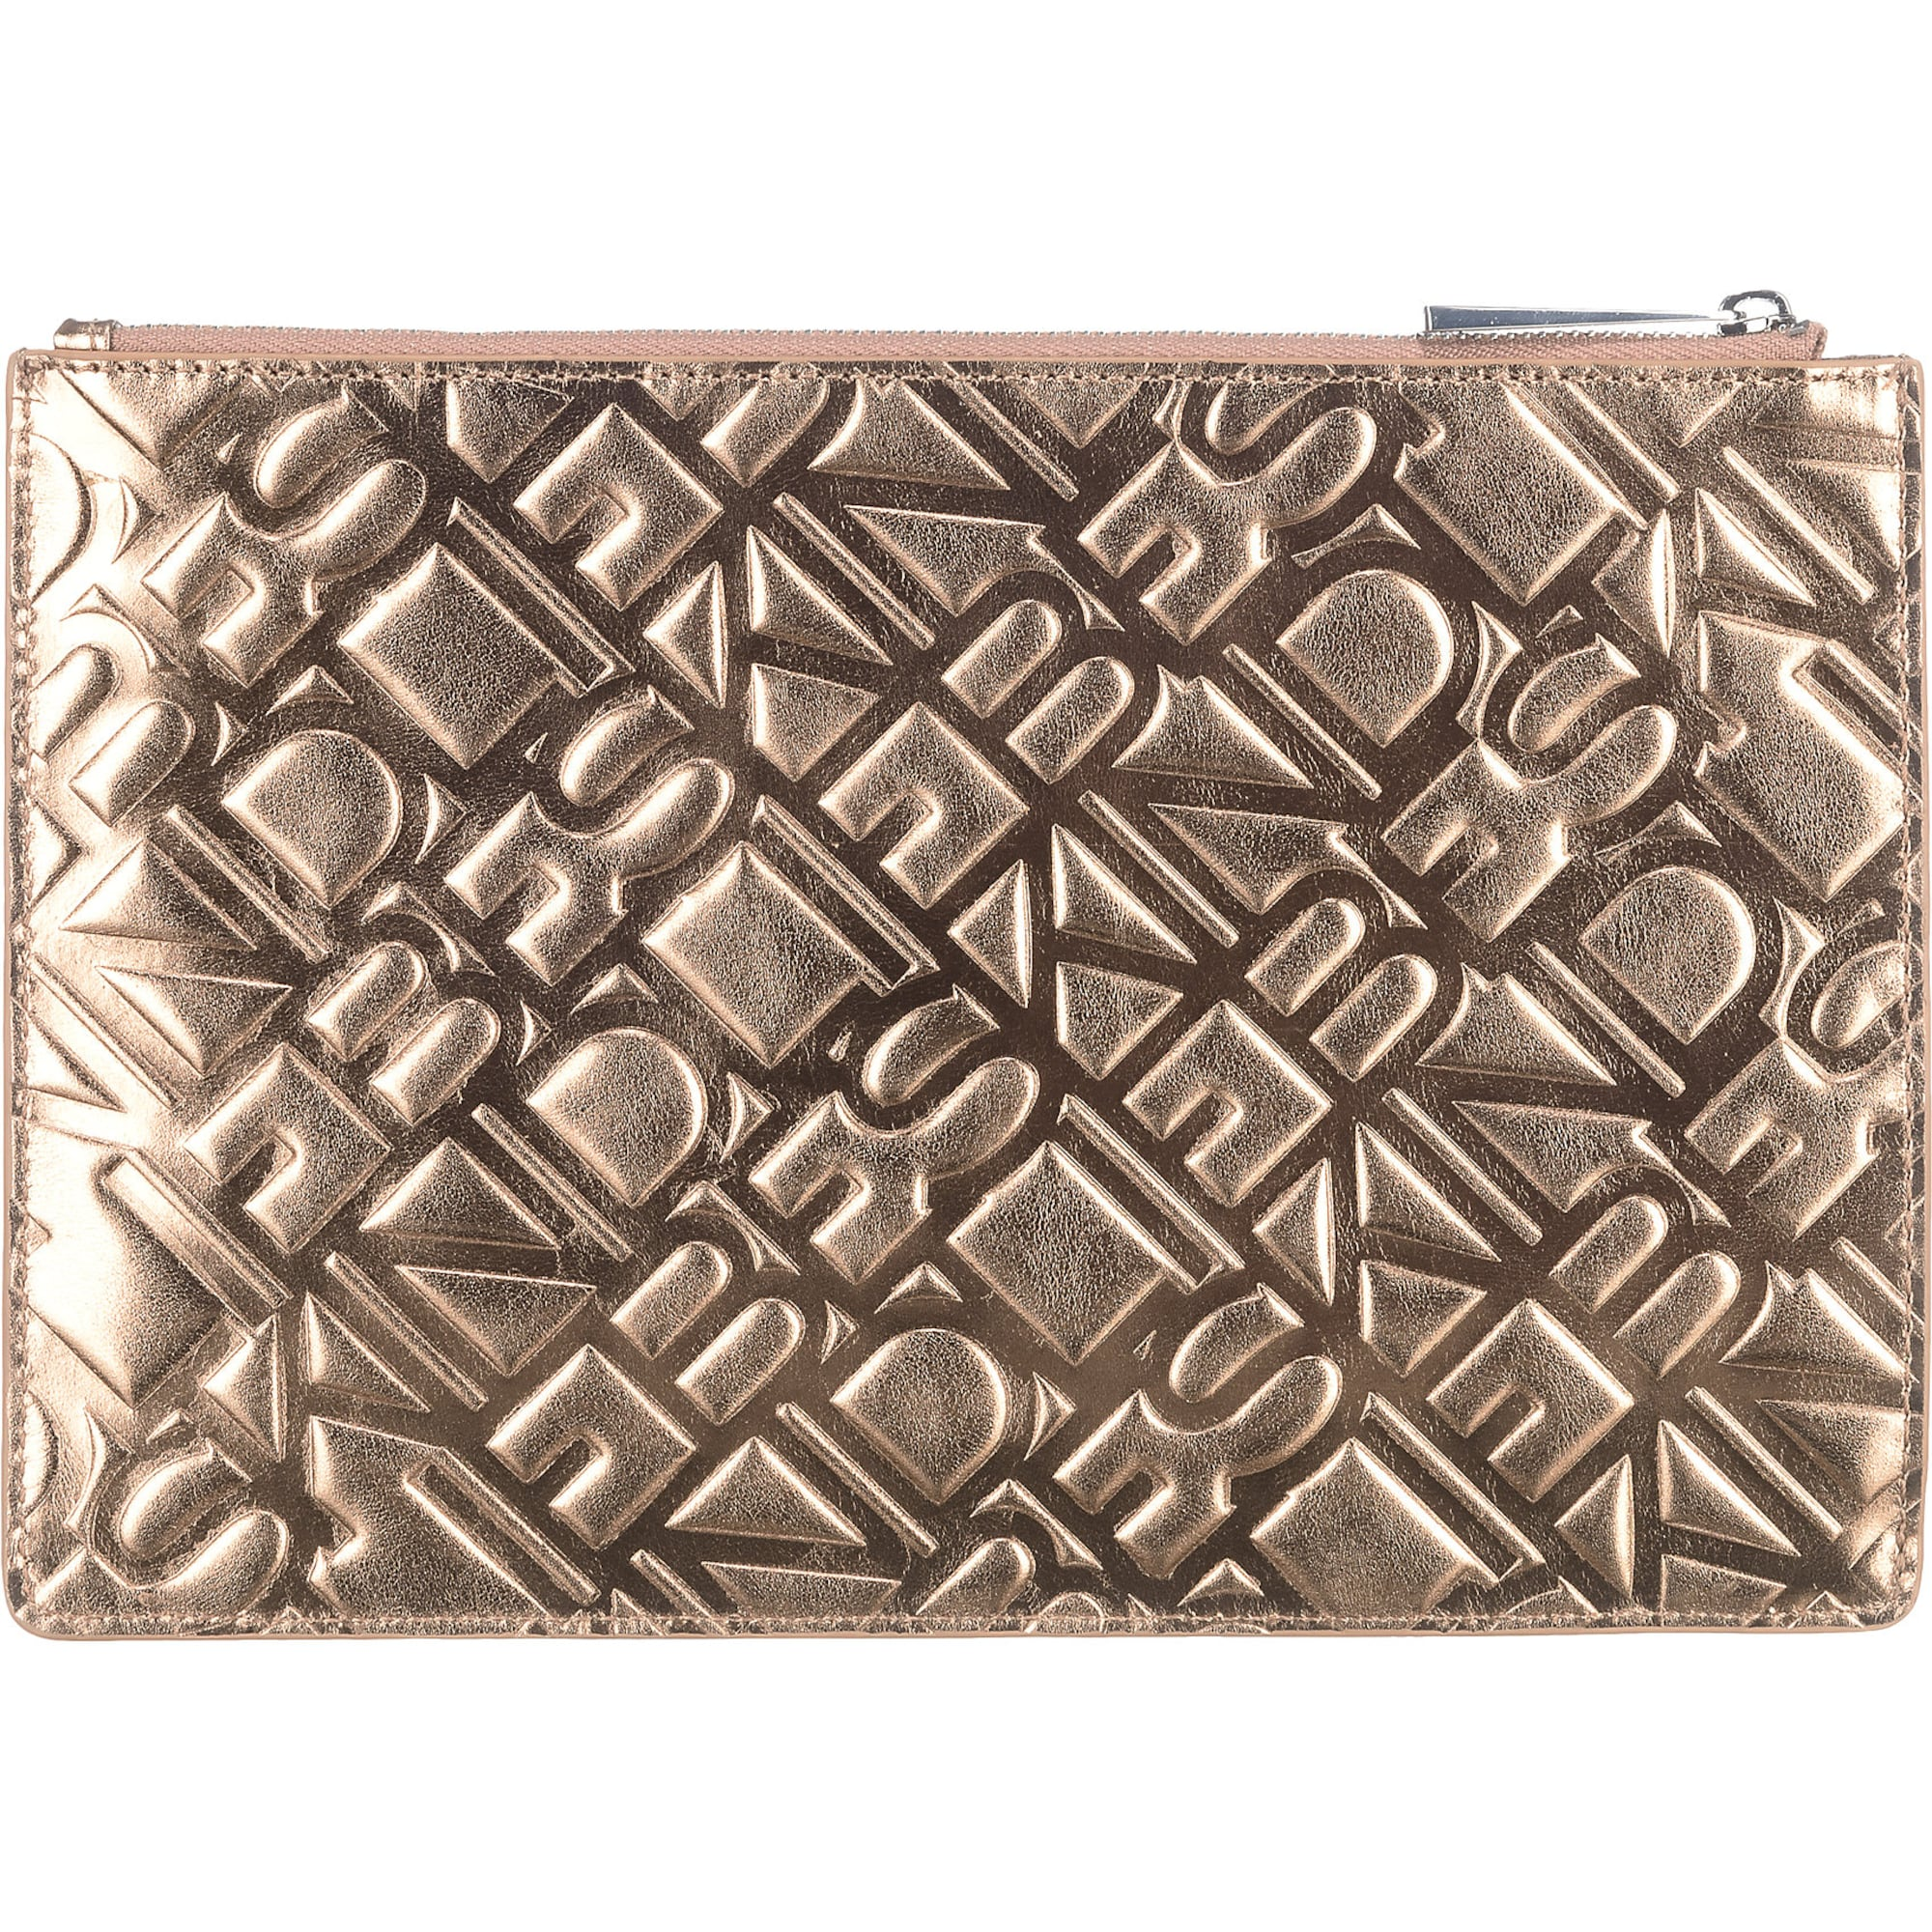 liebeskind berlin - Clutch ´MinjaMS8´